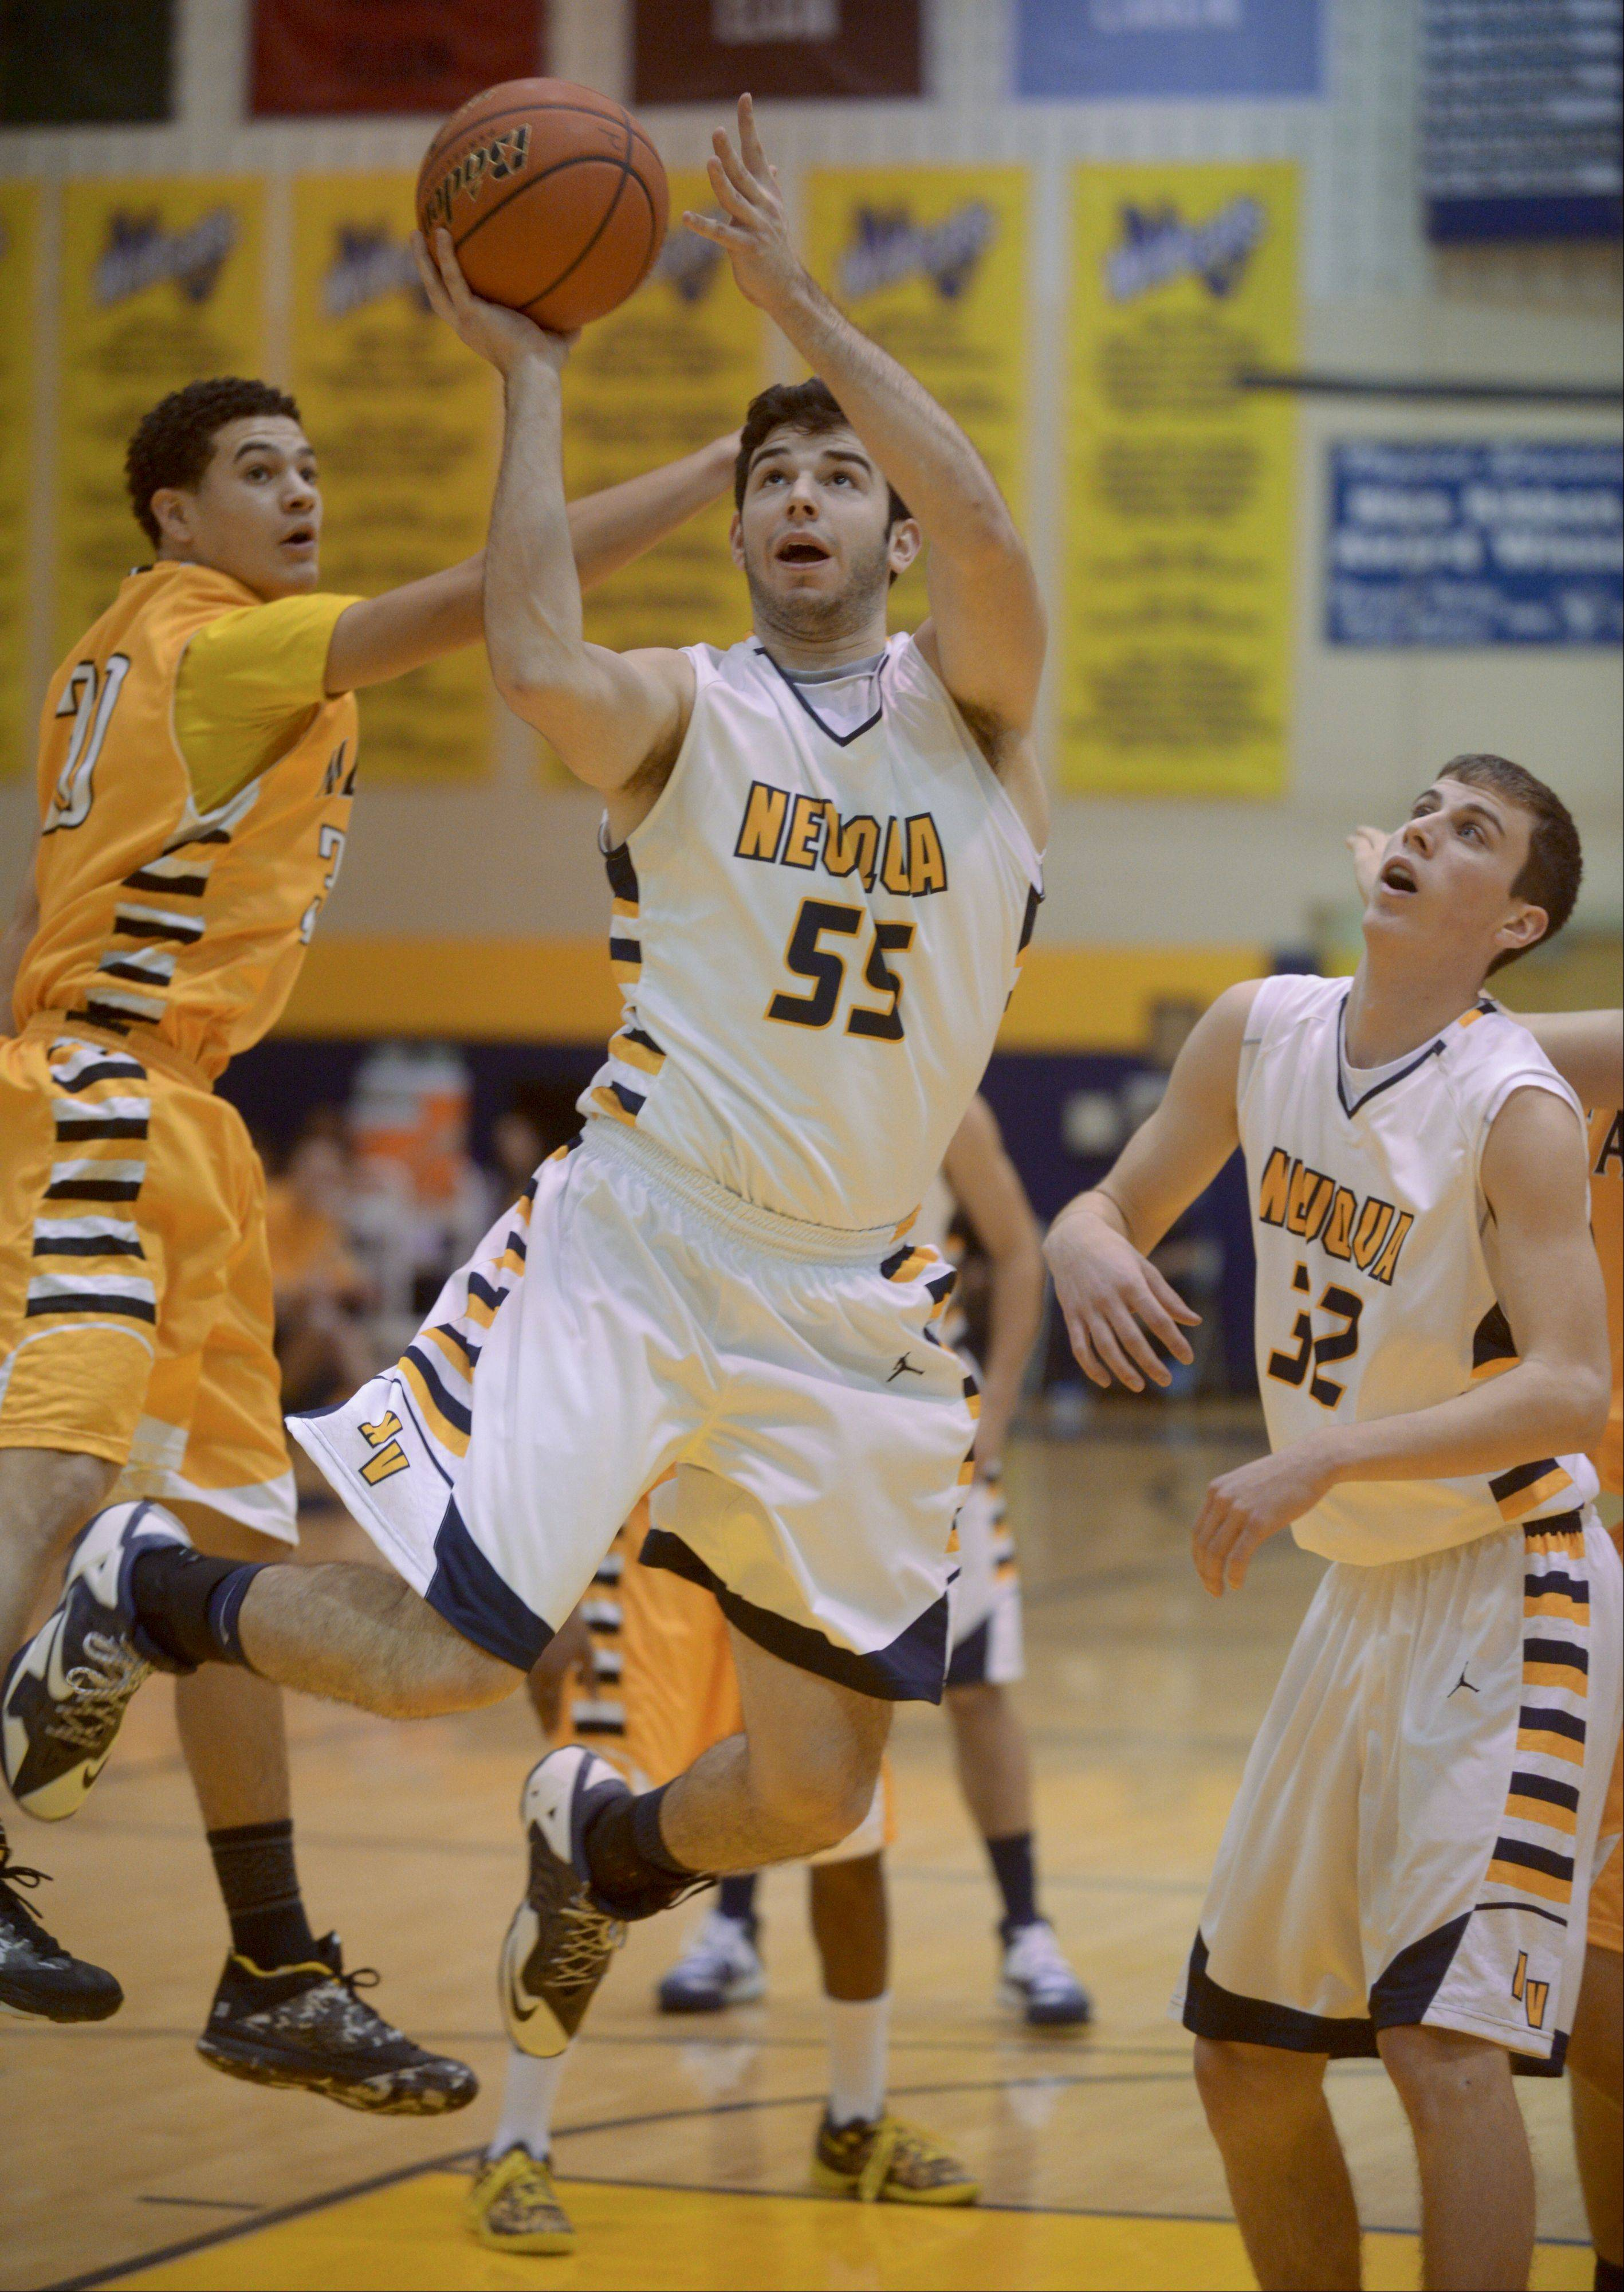 Mark Black/mblack@dailyherald.comZach Incaudo of Neuqua Valley lays up for a shot against Metea Valley during boys basketball.